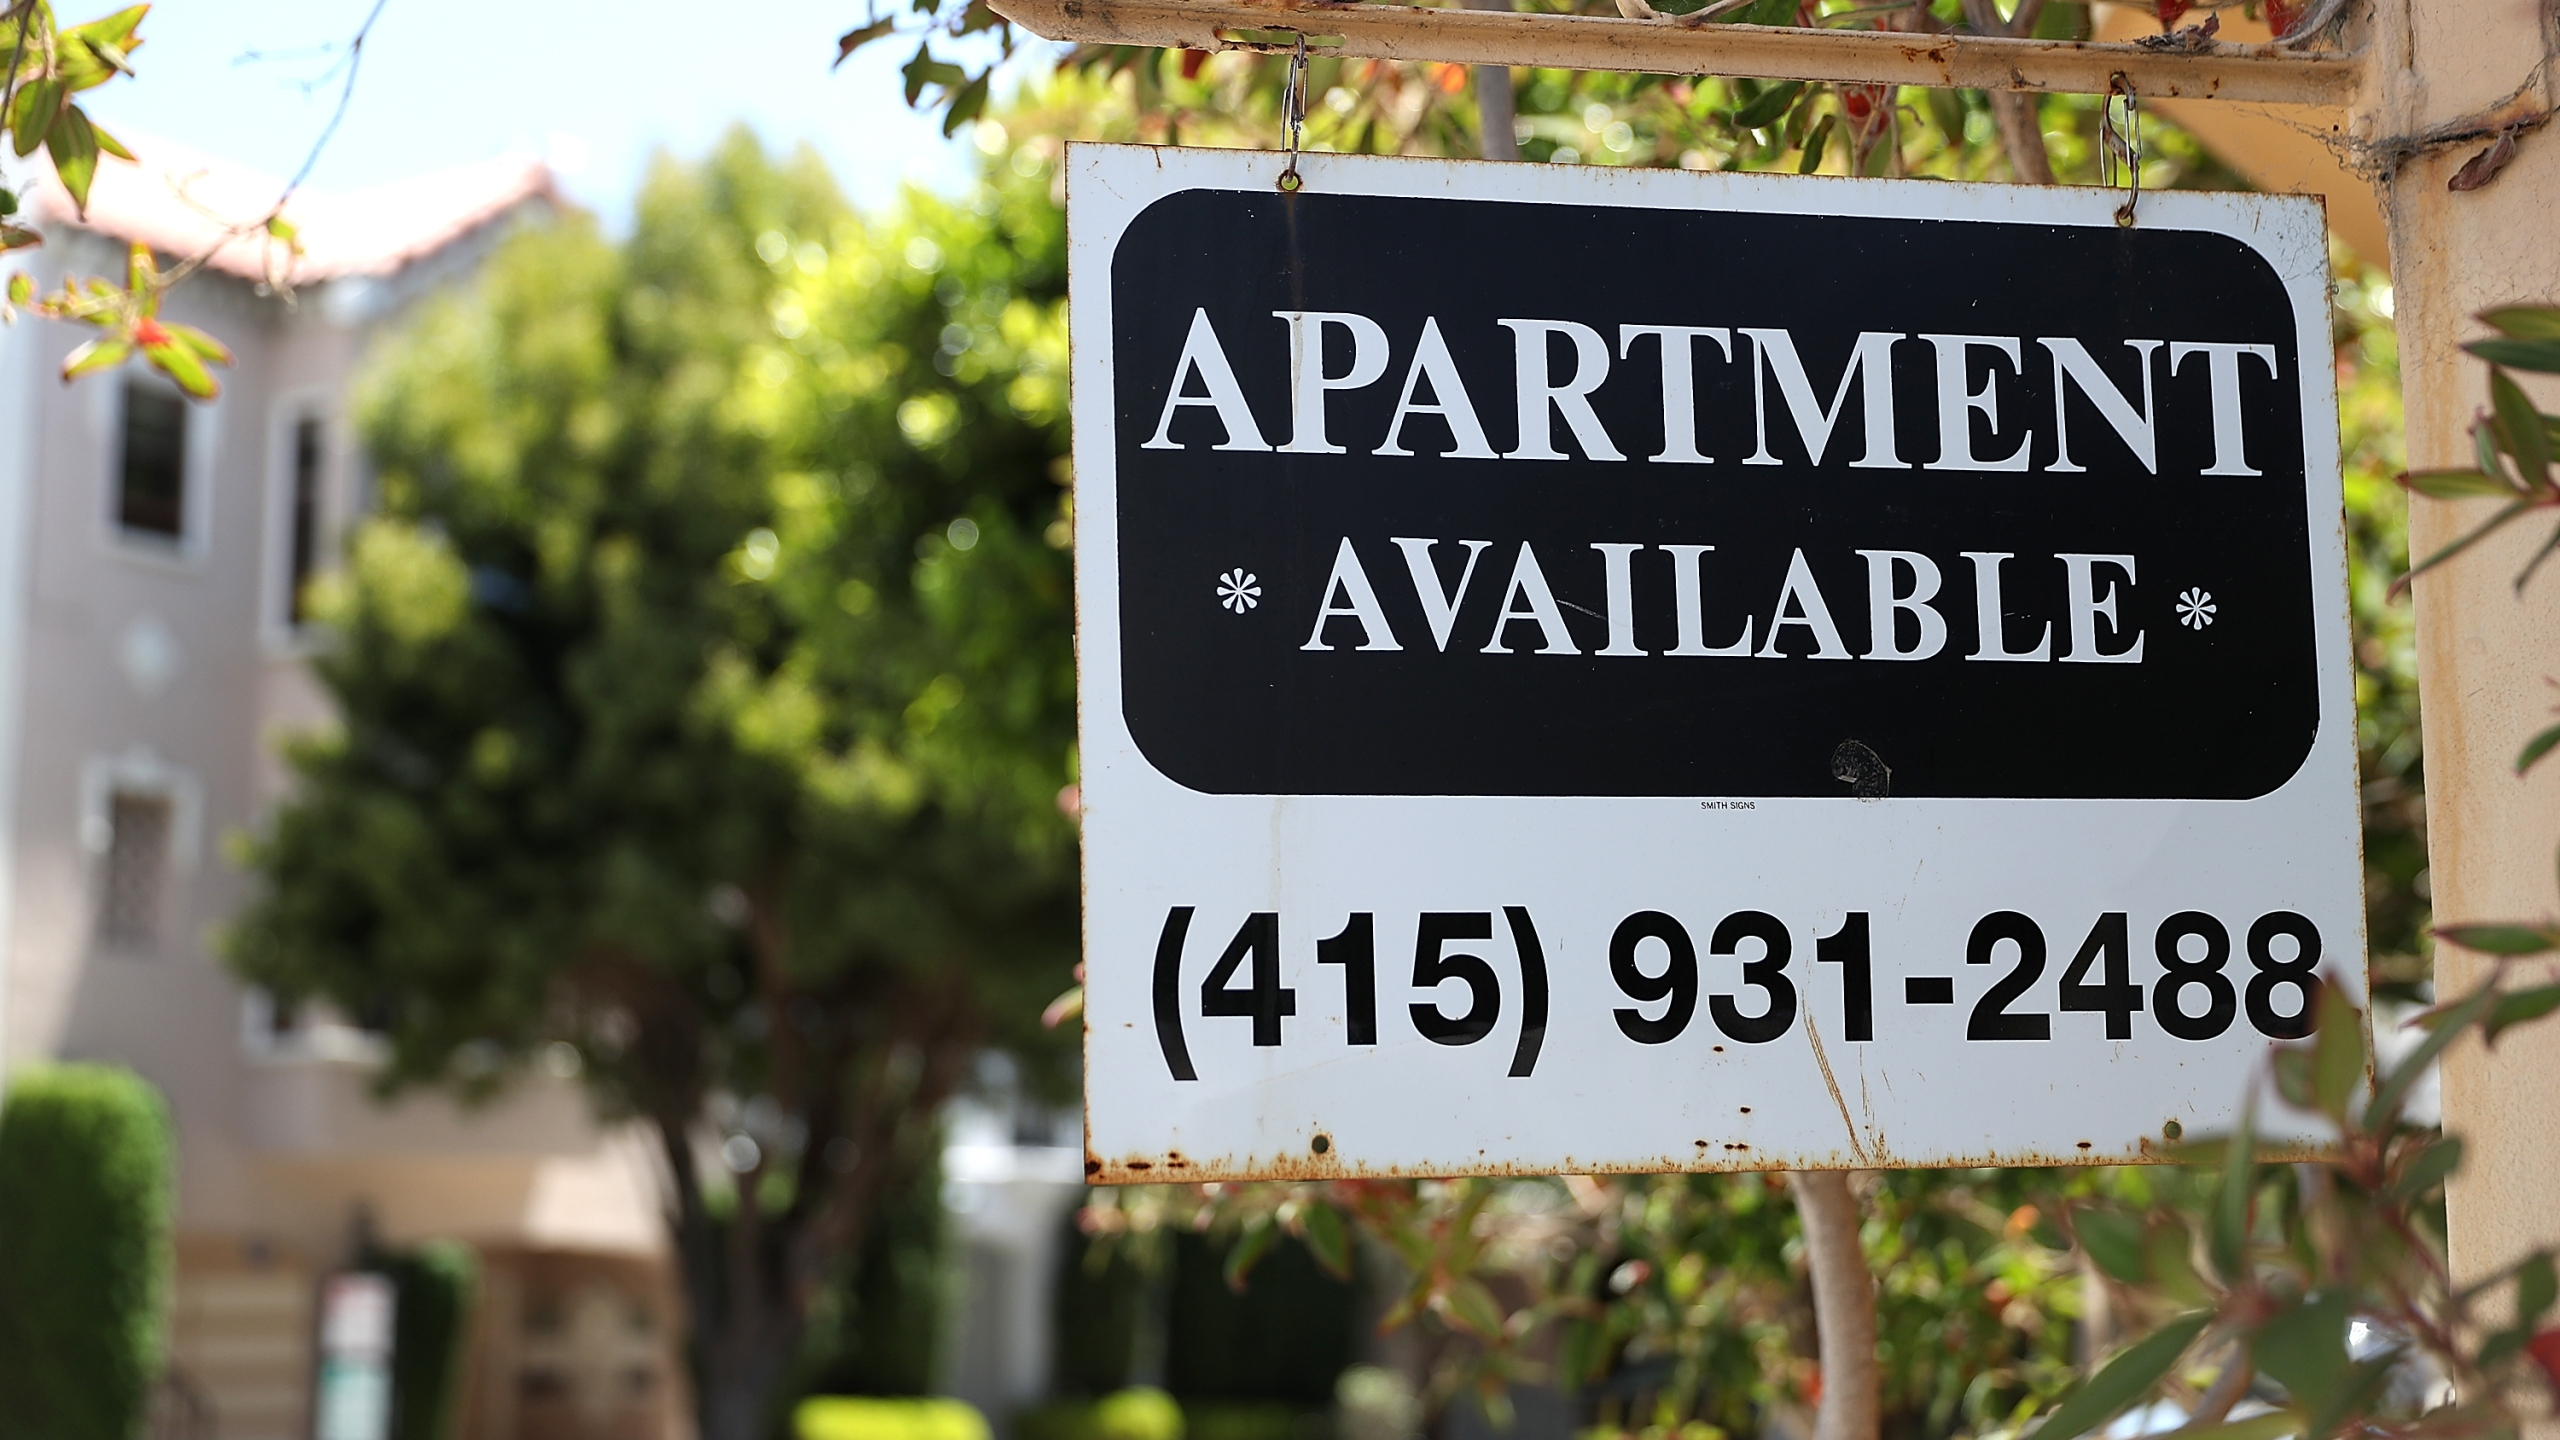 A rental vacancy sign is posted in front of an apartment in San Francisco on June 13, 2018. (Credit: Justin Sullivan / Getty Images)